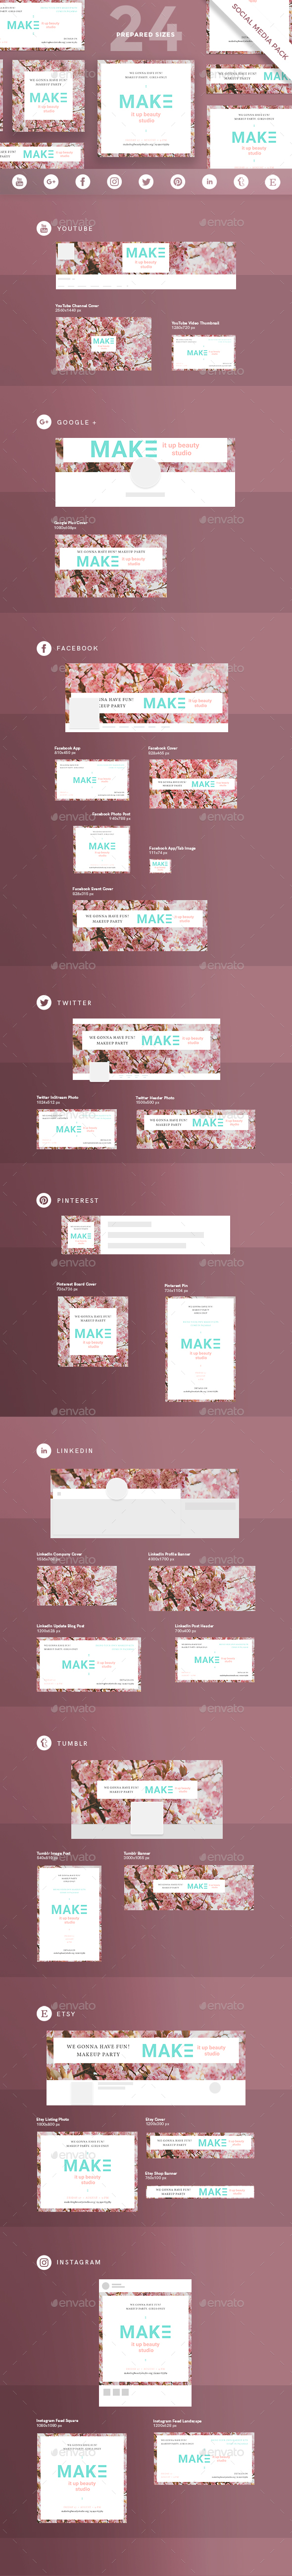 MakeUp Studio Social Media Pack - Miscellaneous Social Media